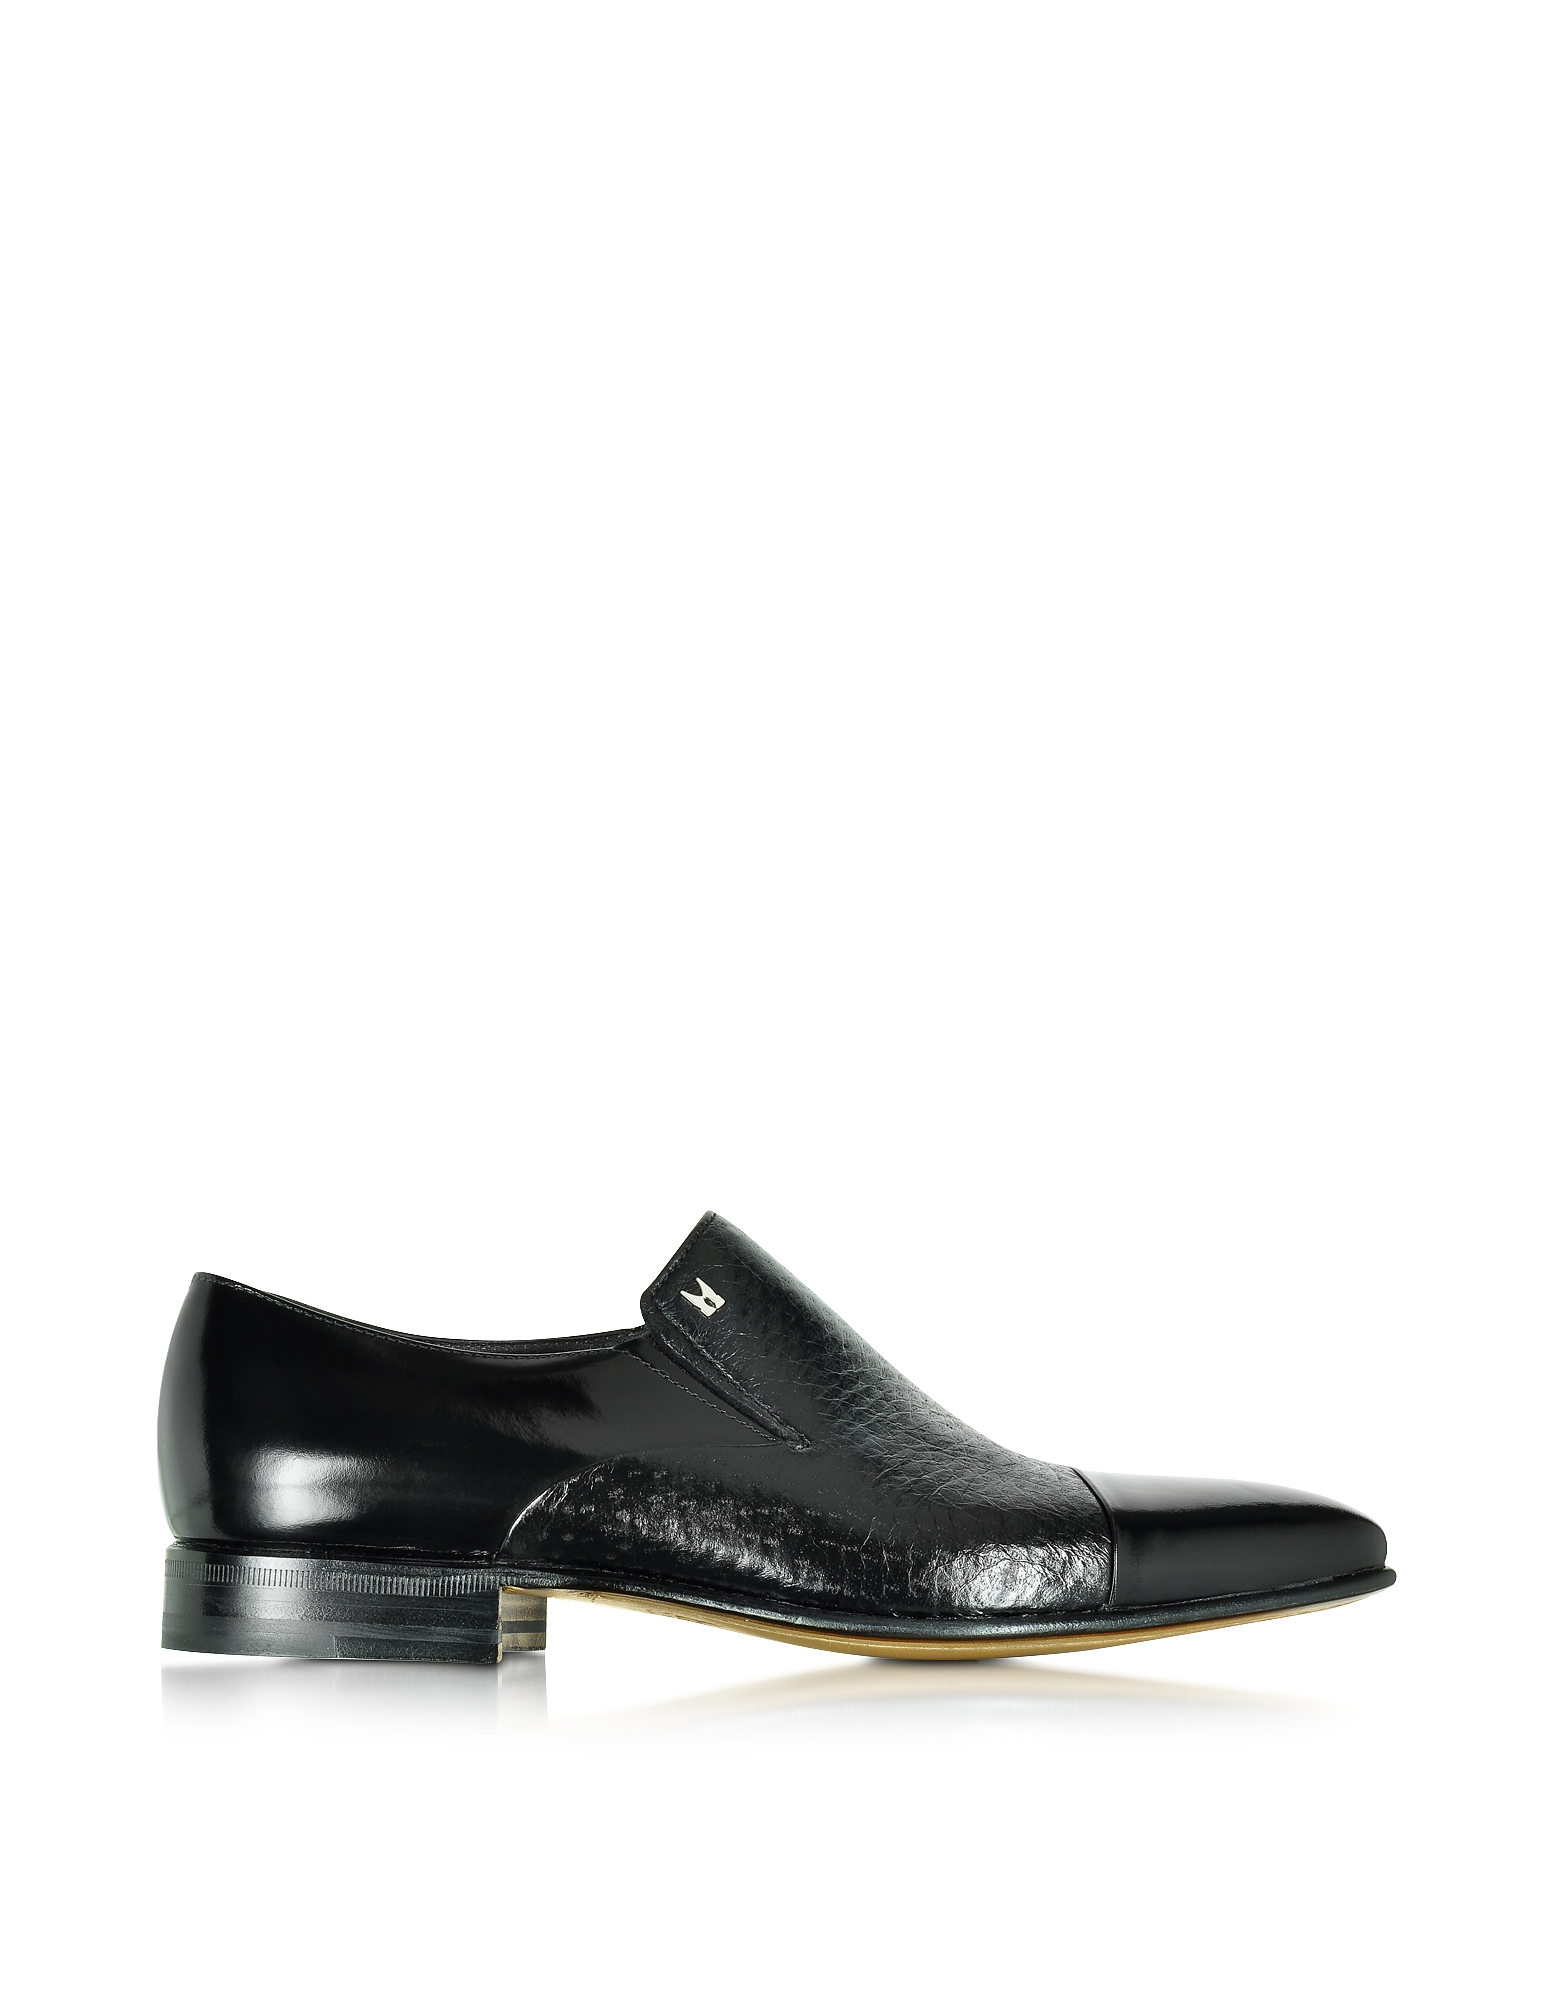 Moreschi Shoes, Metz Black Leather Slip on Loafer